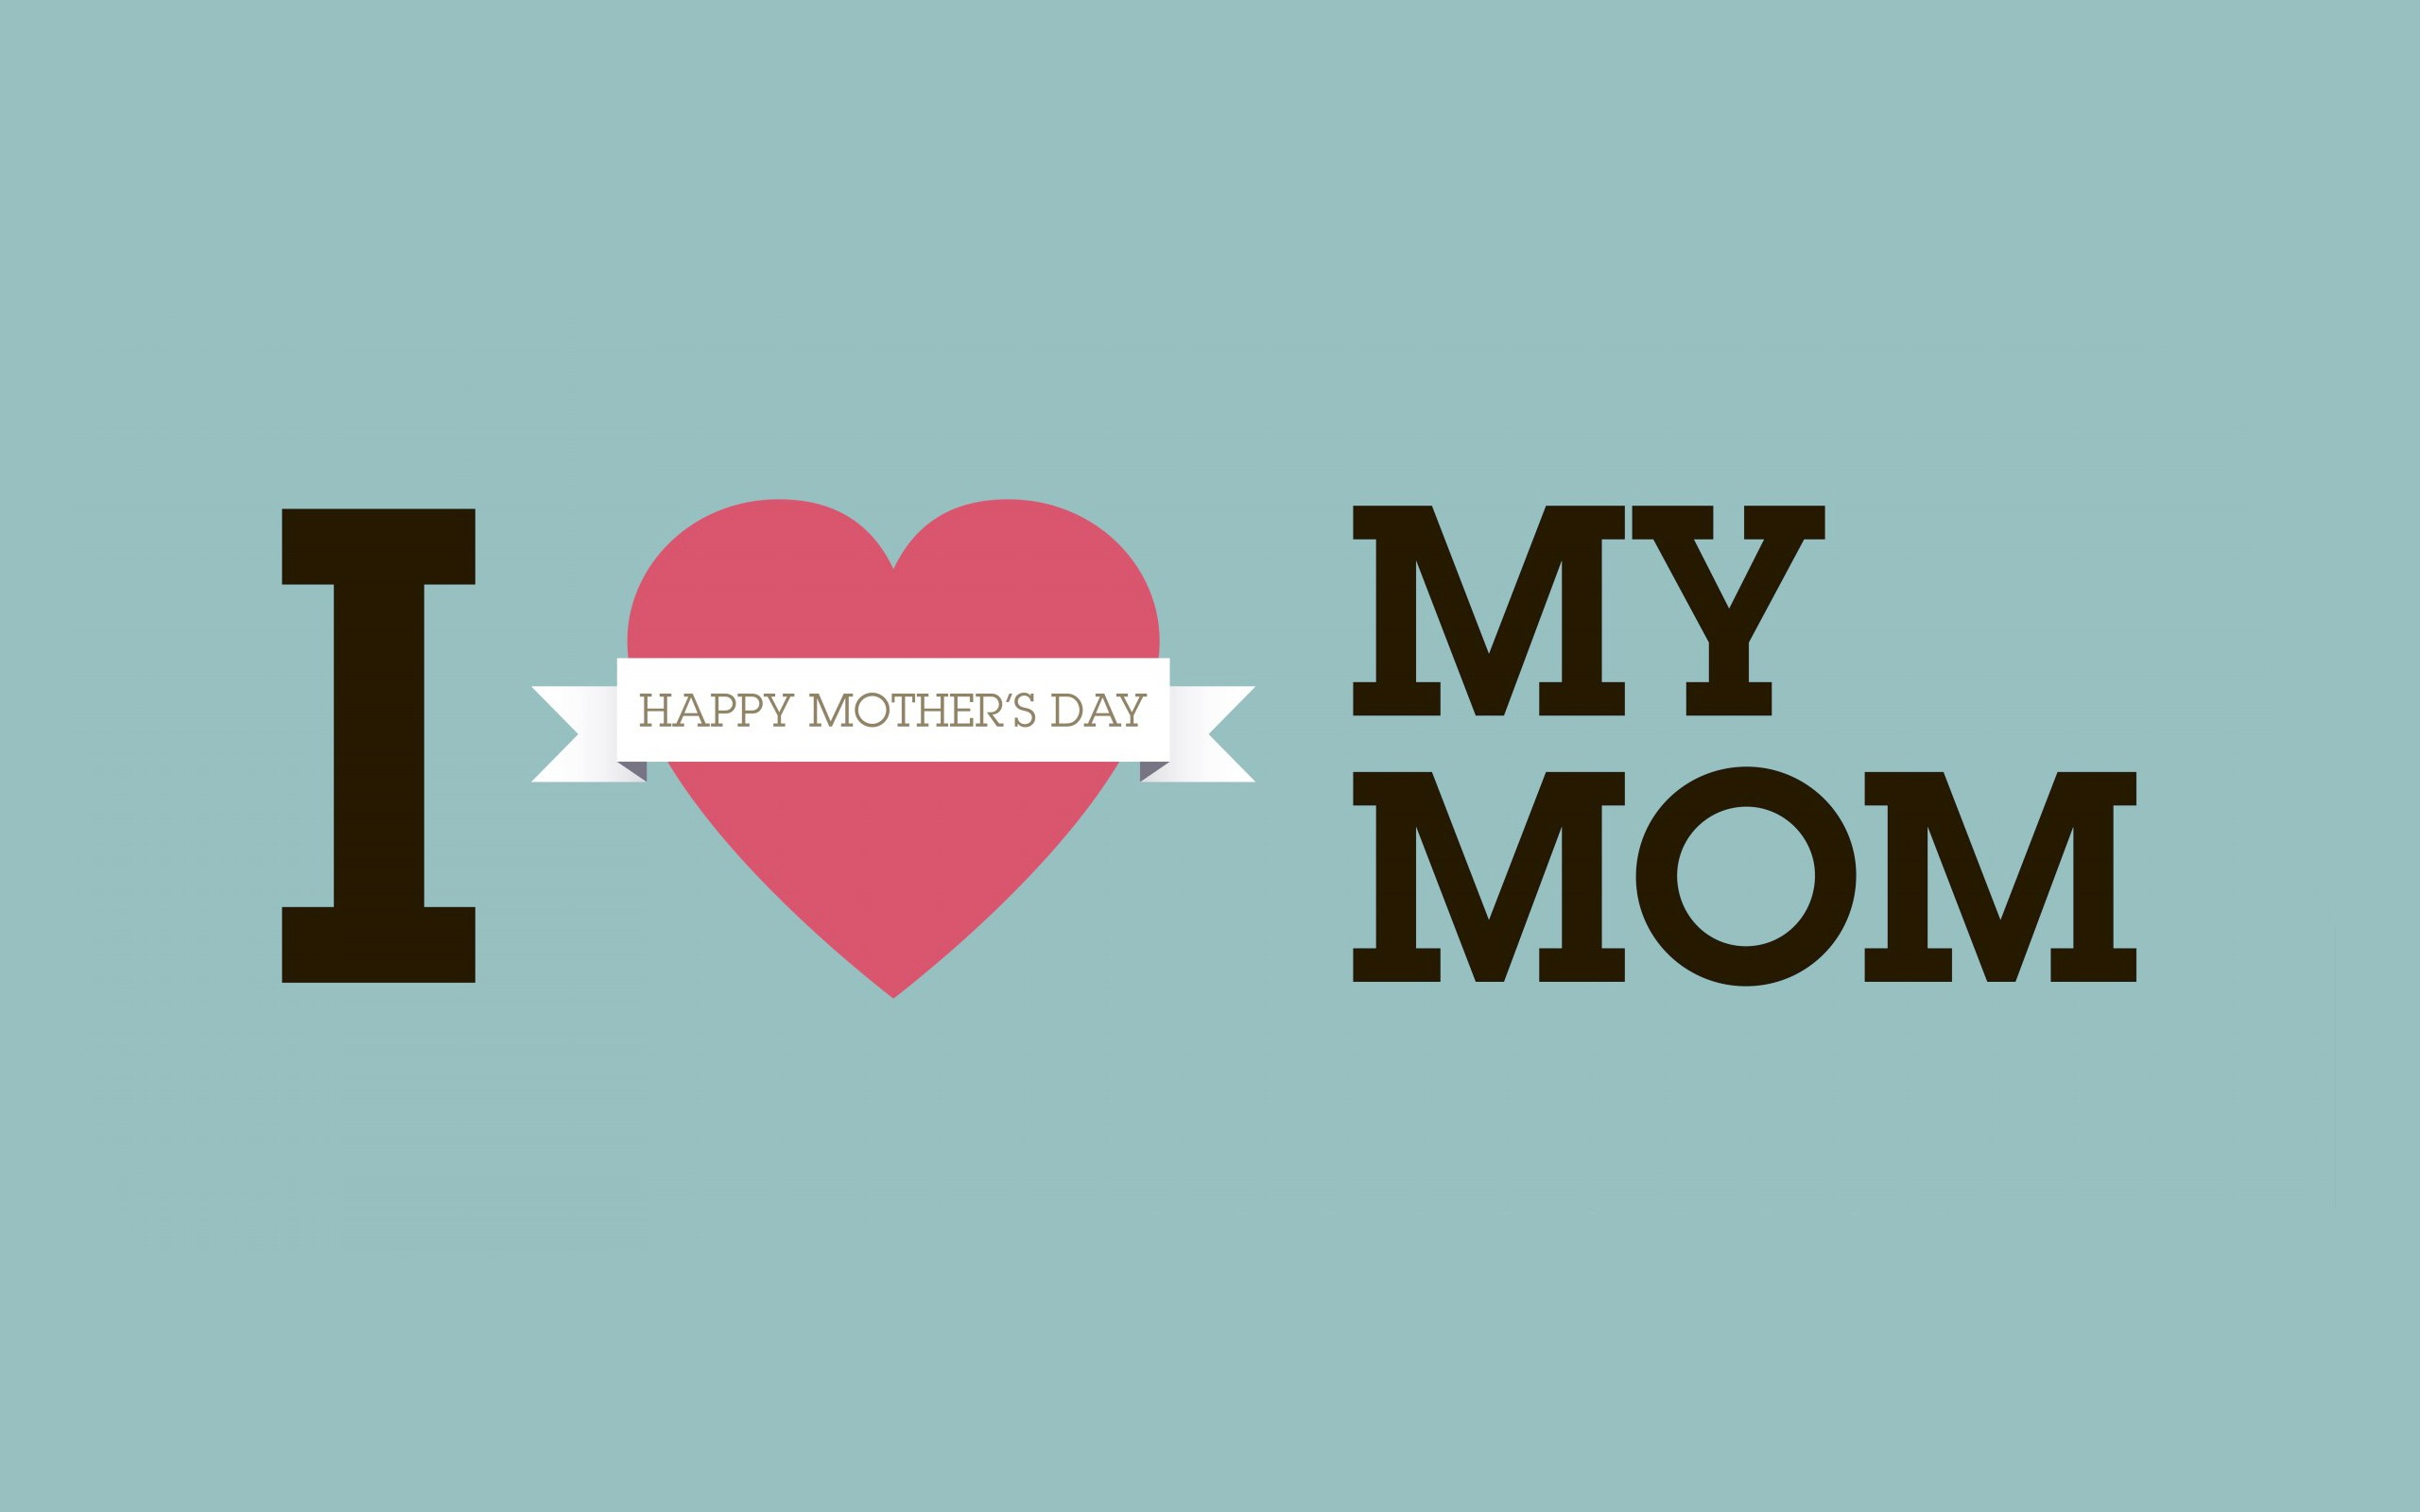 Wallpaper I Love You Mom : I-Love-You-Mom-Background - wallpaper.wiki